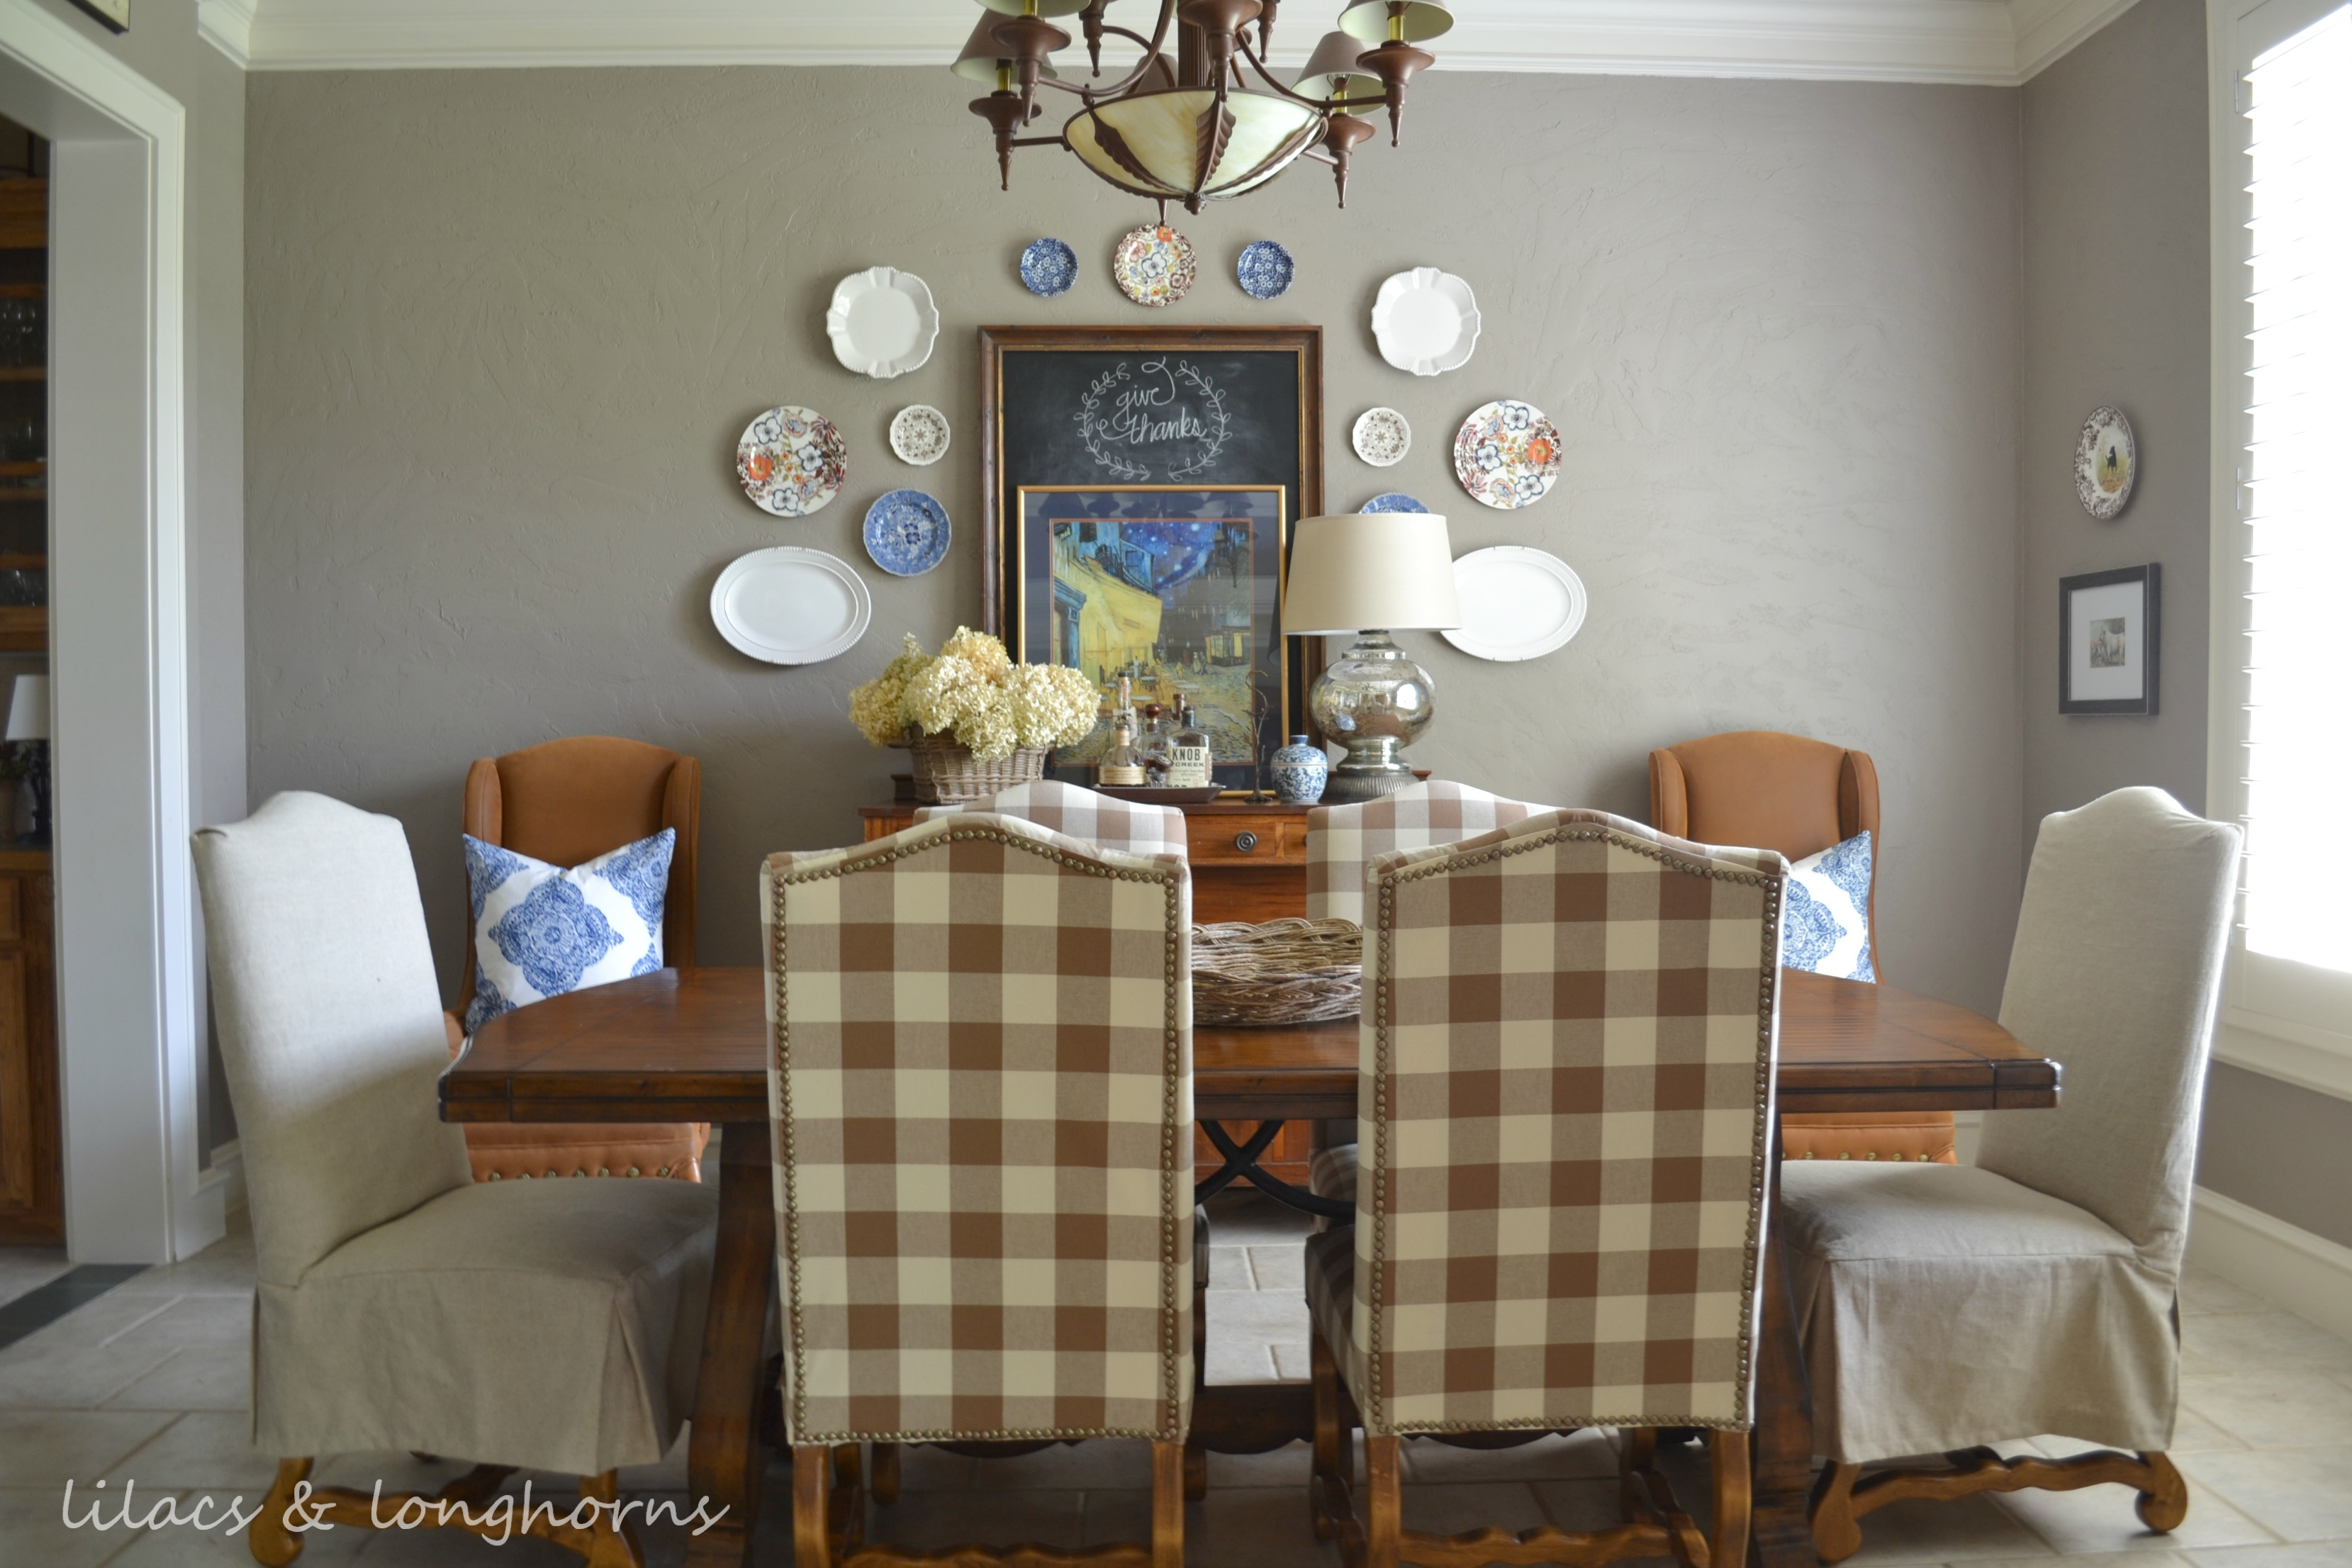 Favorite diy projects of 2013 lilacs and longhornslilacs for Decorative items for dining room